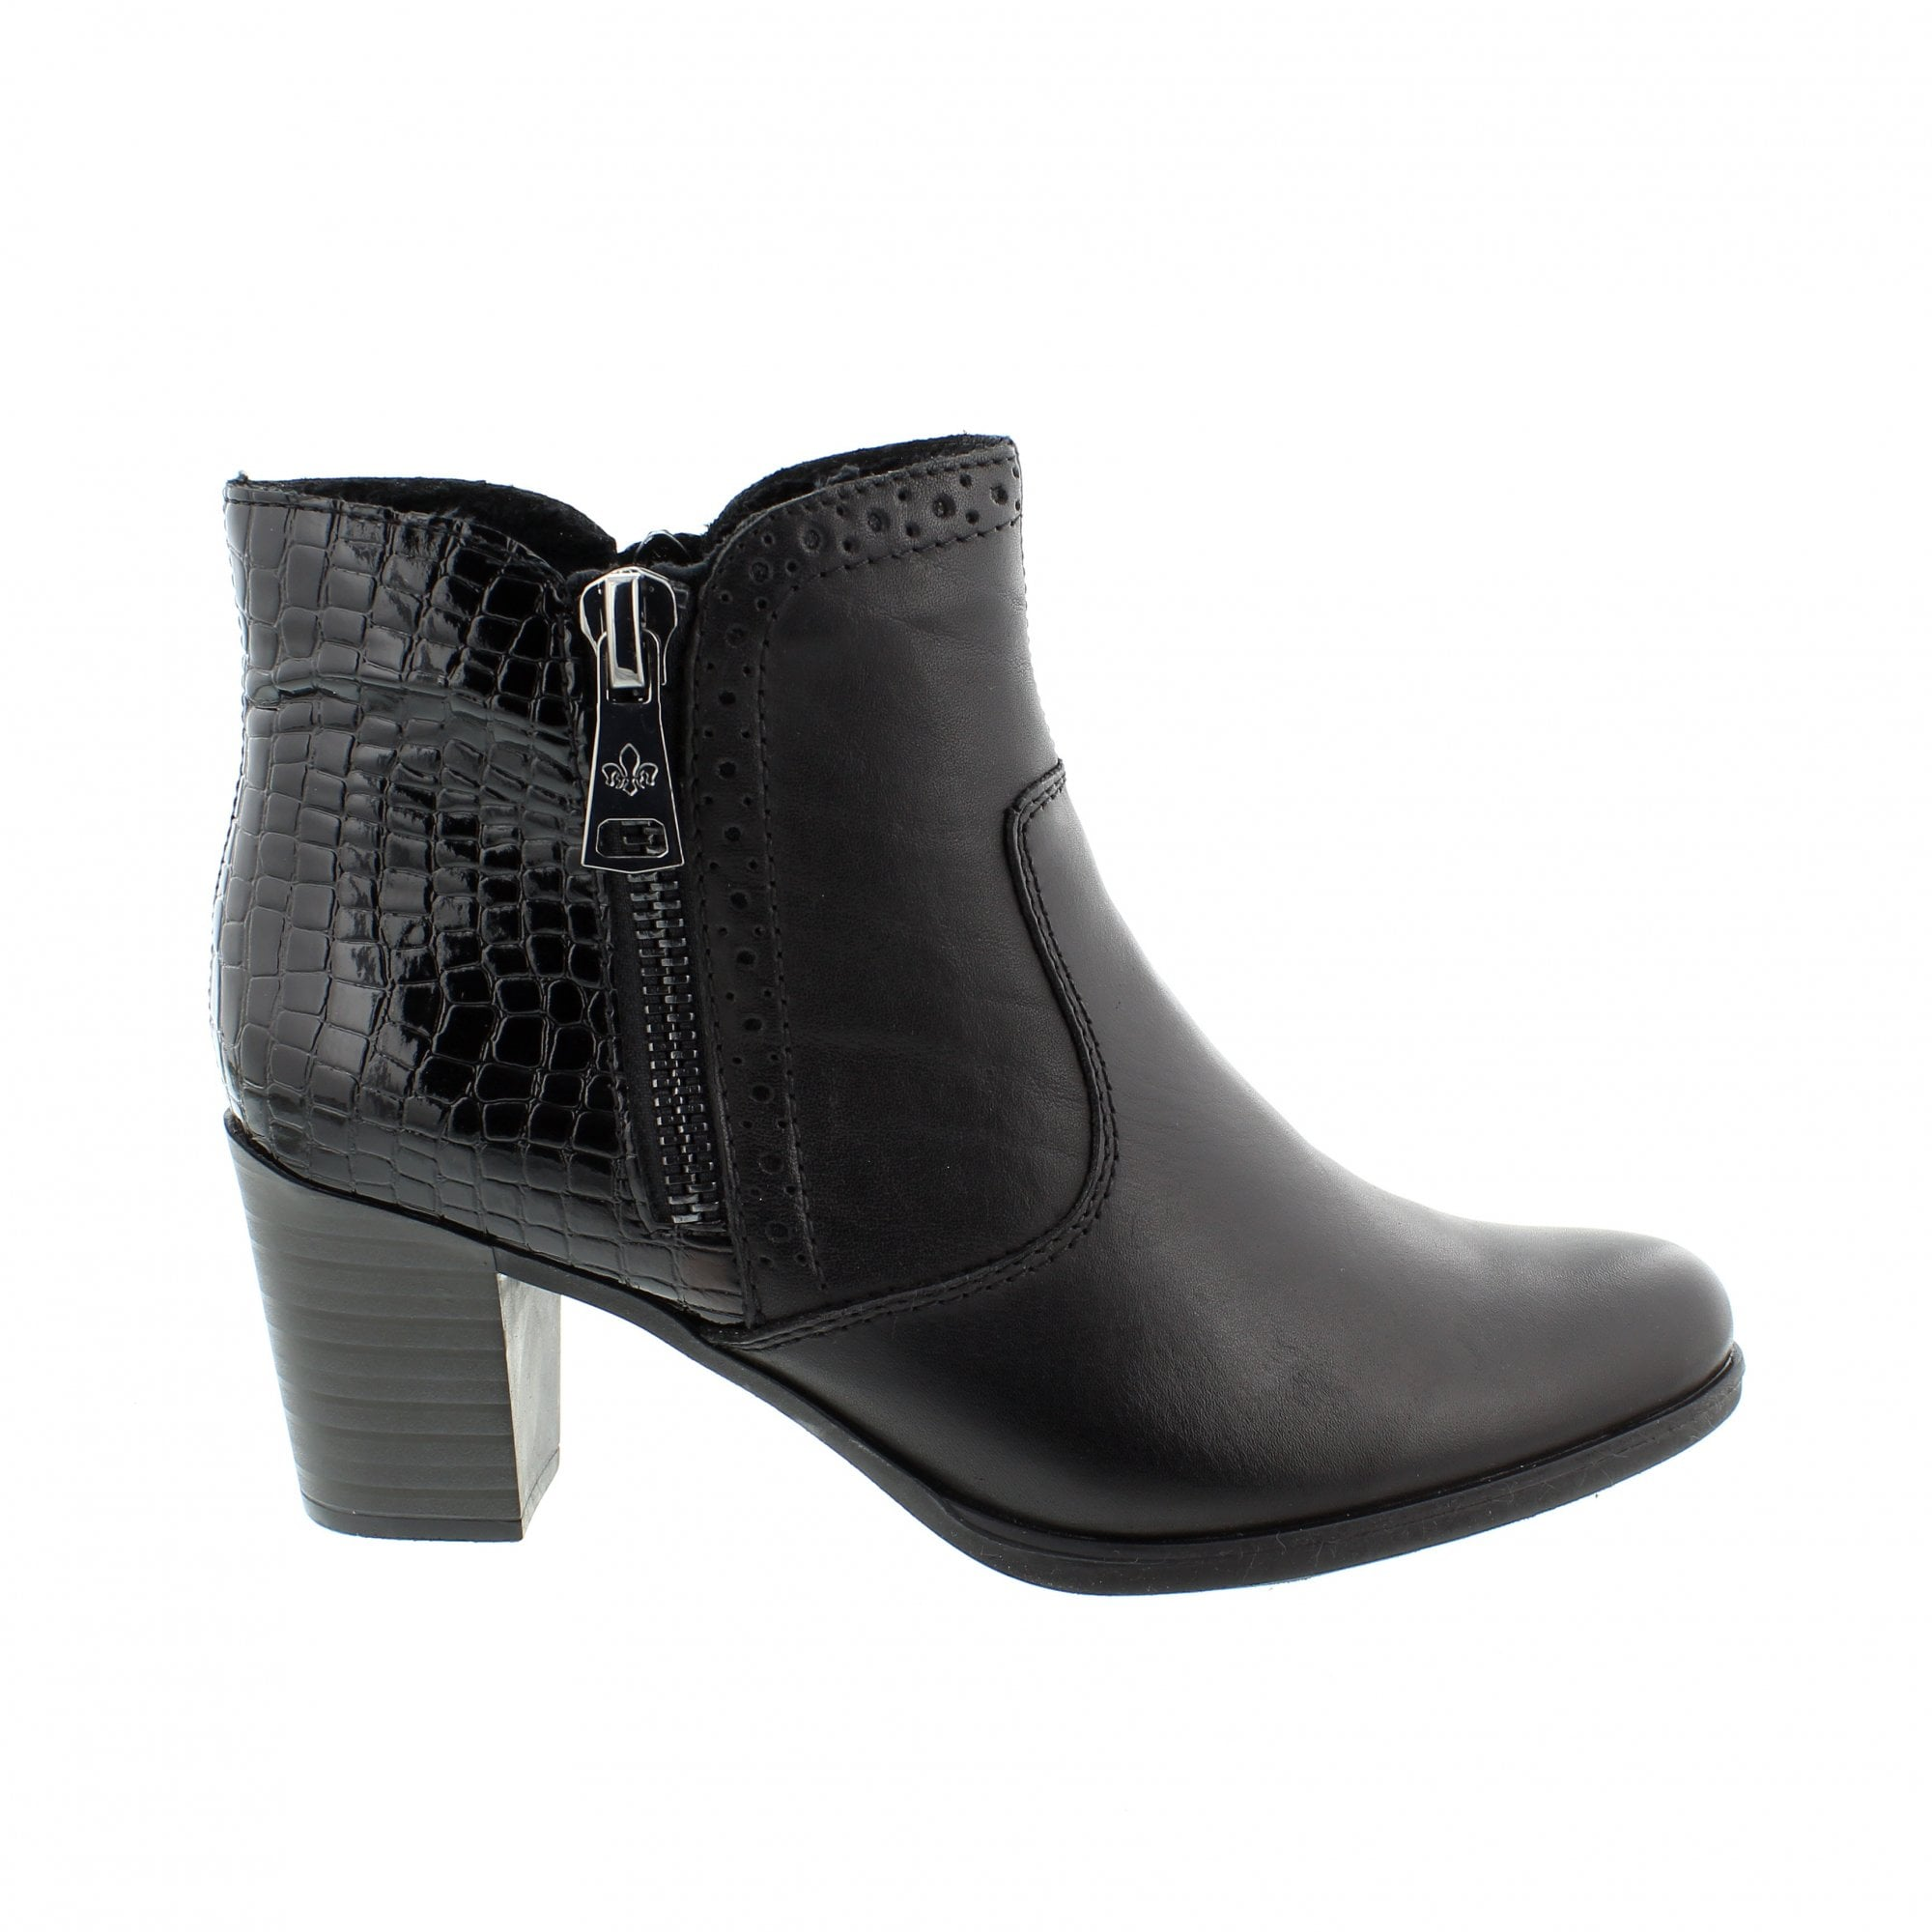 562b87209dc4b0 Rieker Y8965-00 Black Leather Womens Ankle Boots